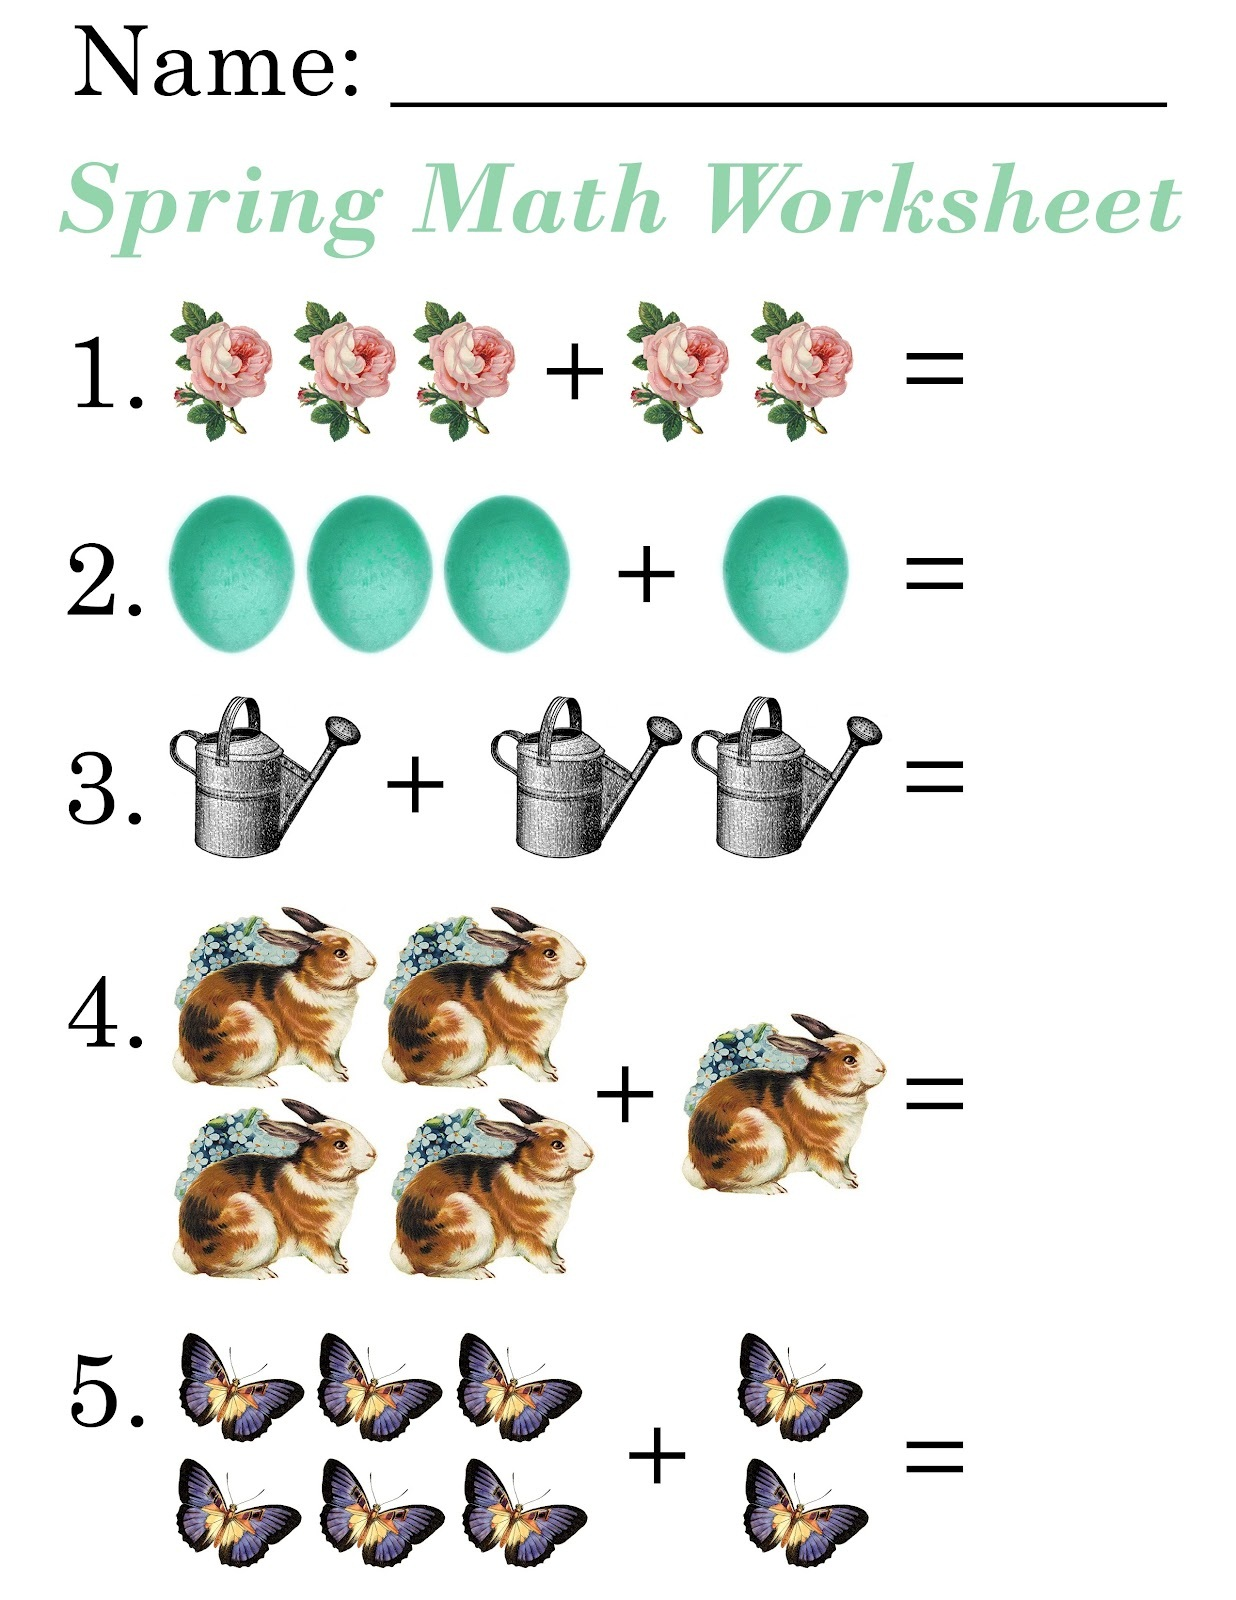 Addition Worksheet For Grade 1 common core math worksheets 5th – Math Addition Worksheets for Grade 1